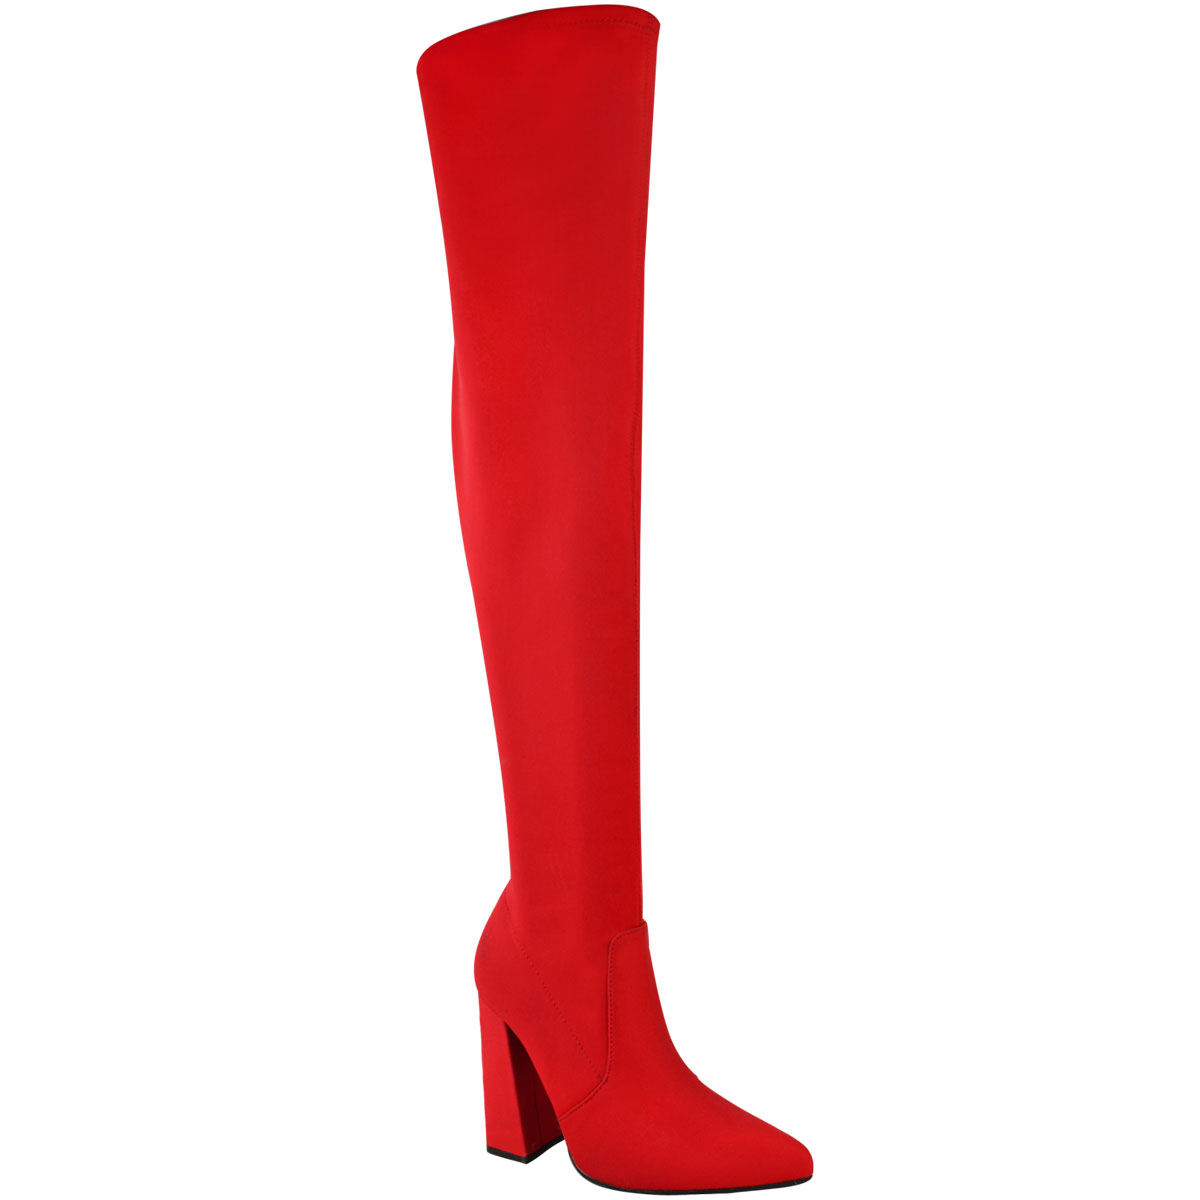 Womens-Ladies-Thigh-High-Boots-Lycra-Over-The-Knee-Pointy-Block-High-Heels-Size Indexbild 8